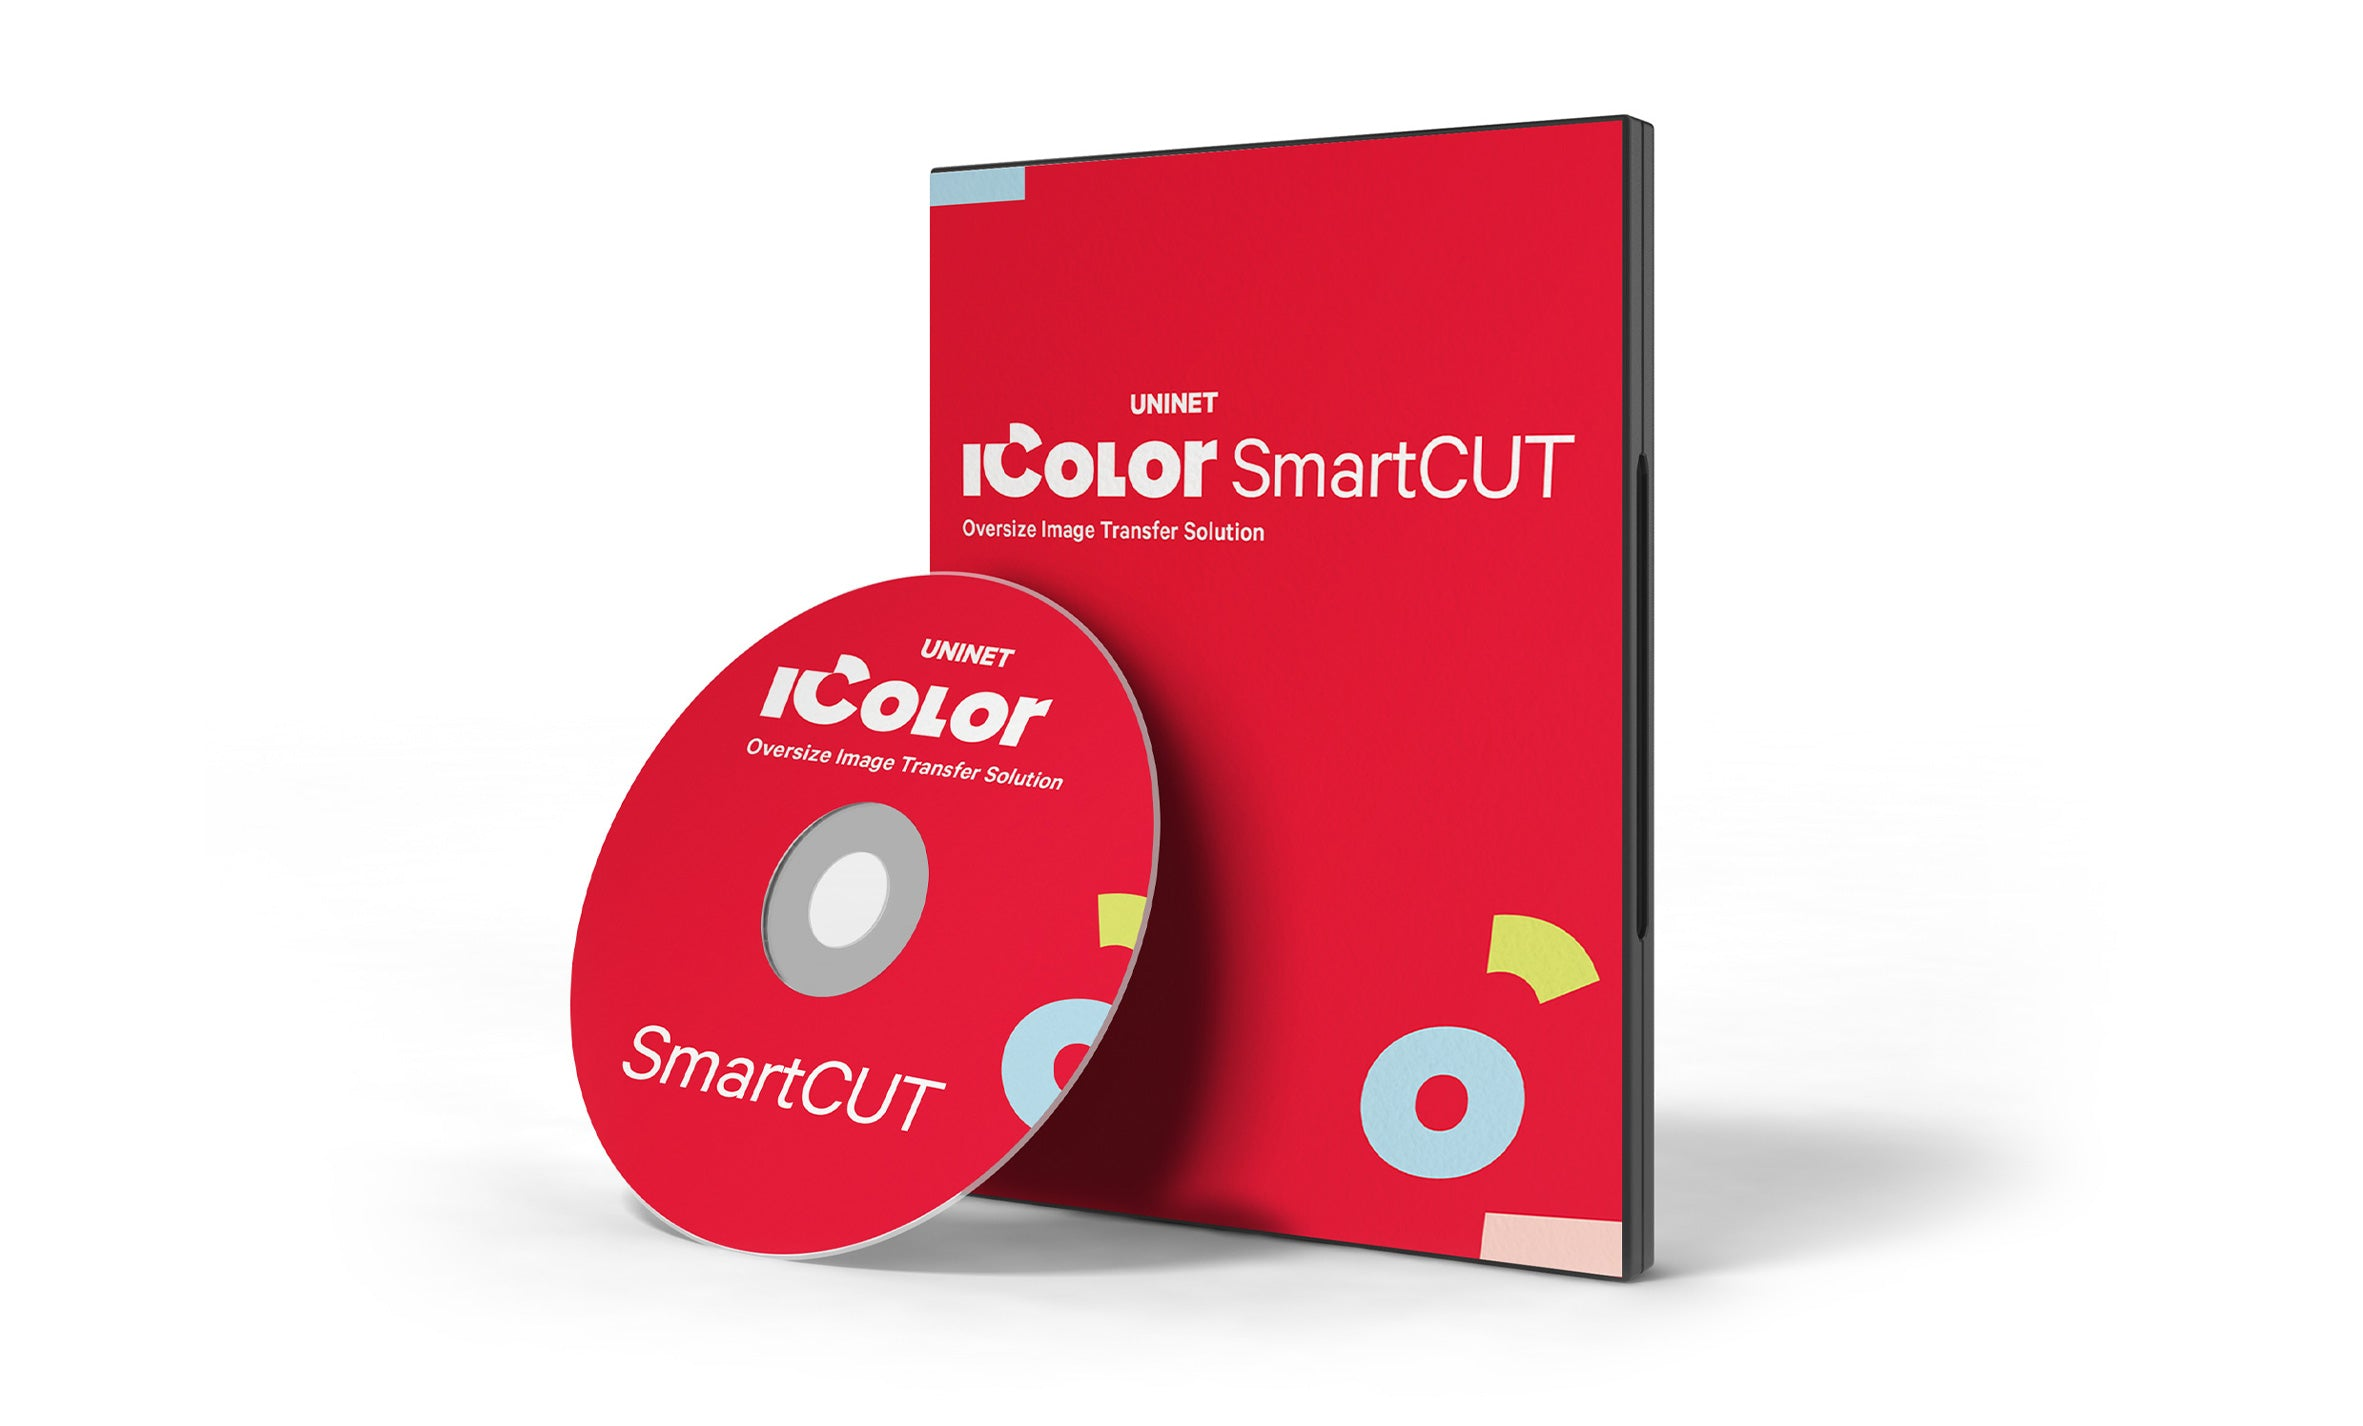 iColor SmartCUT DVD Case